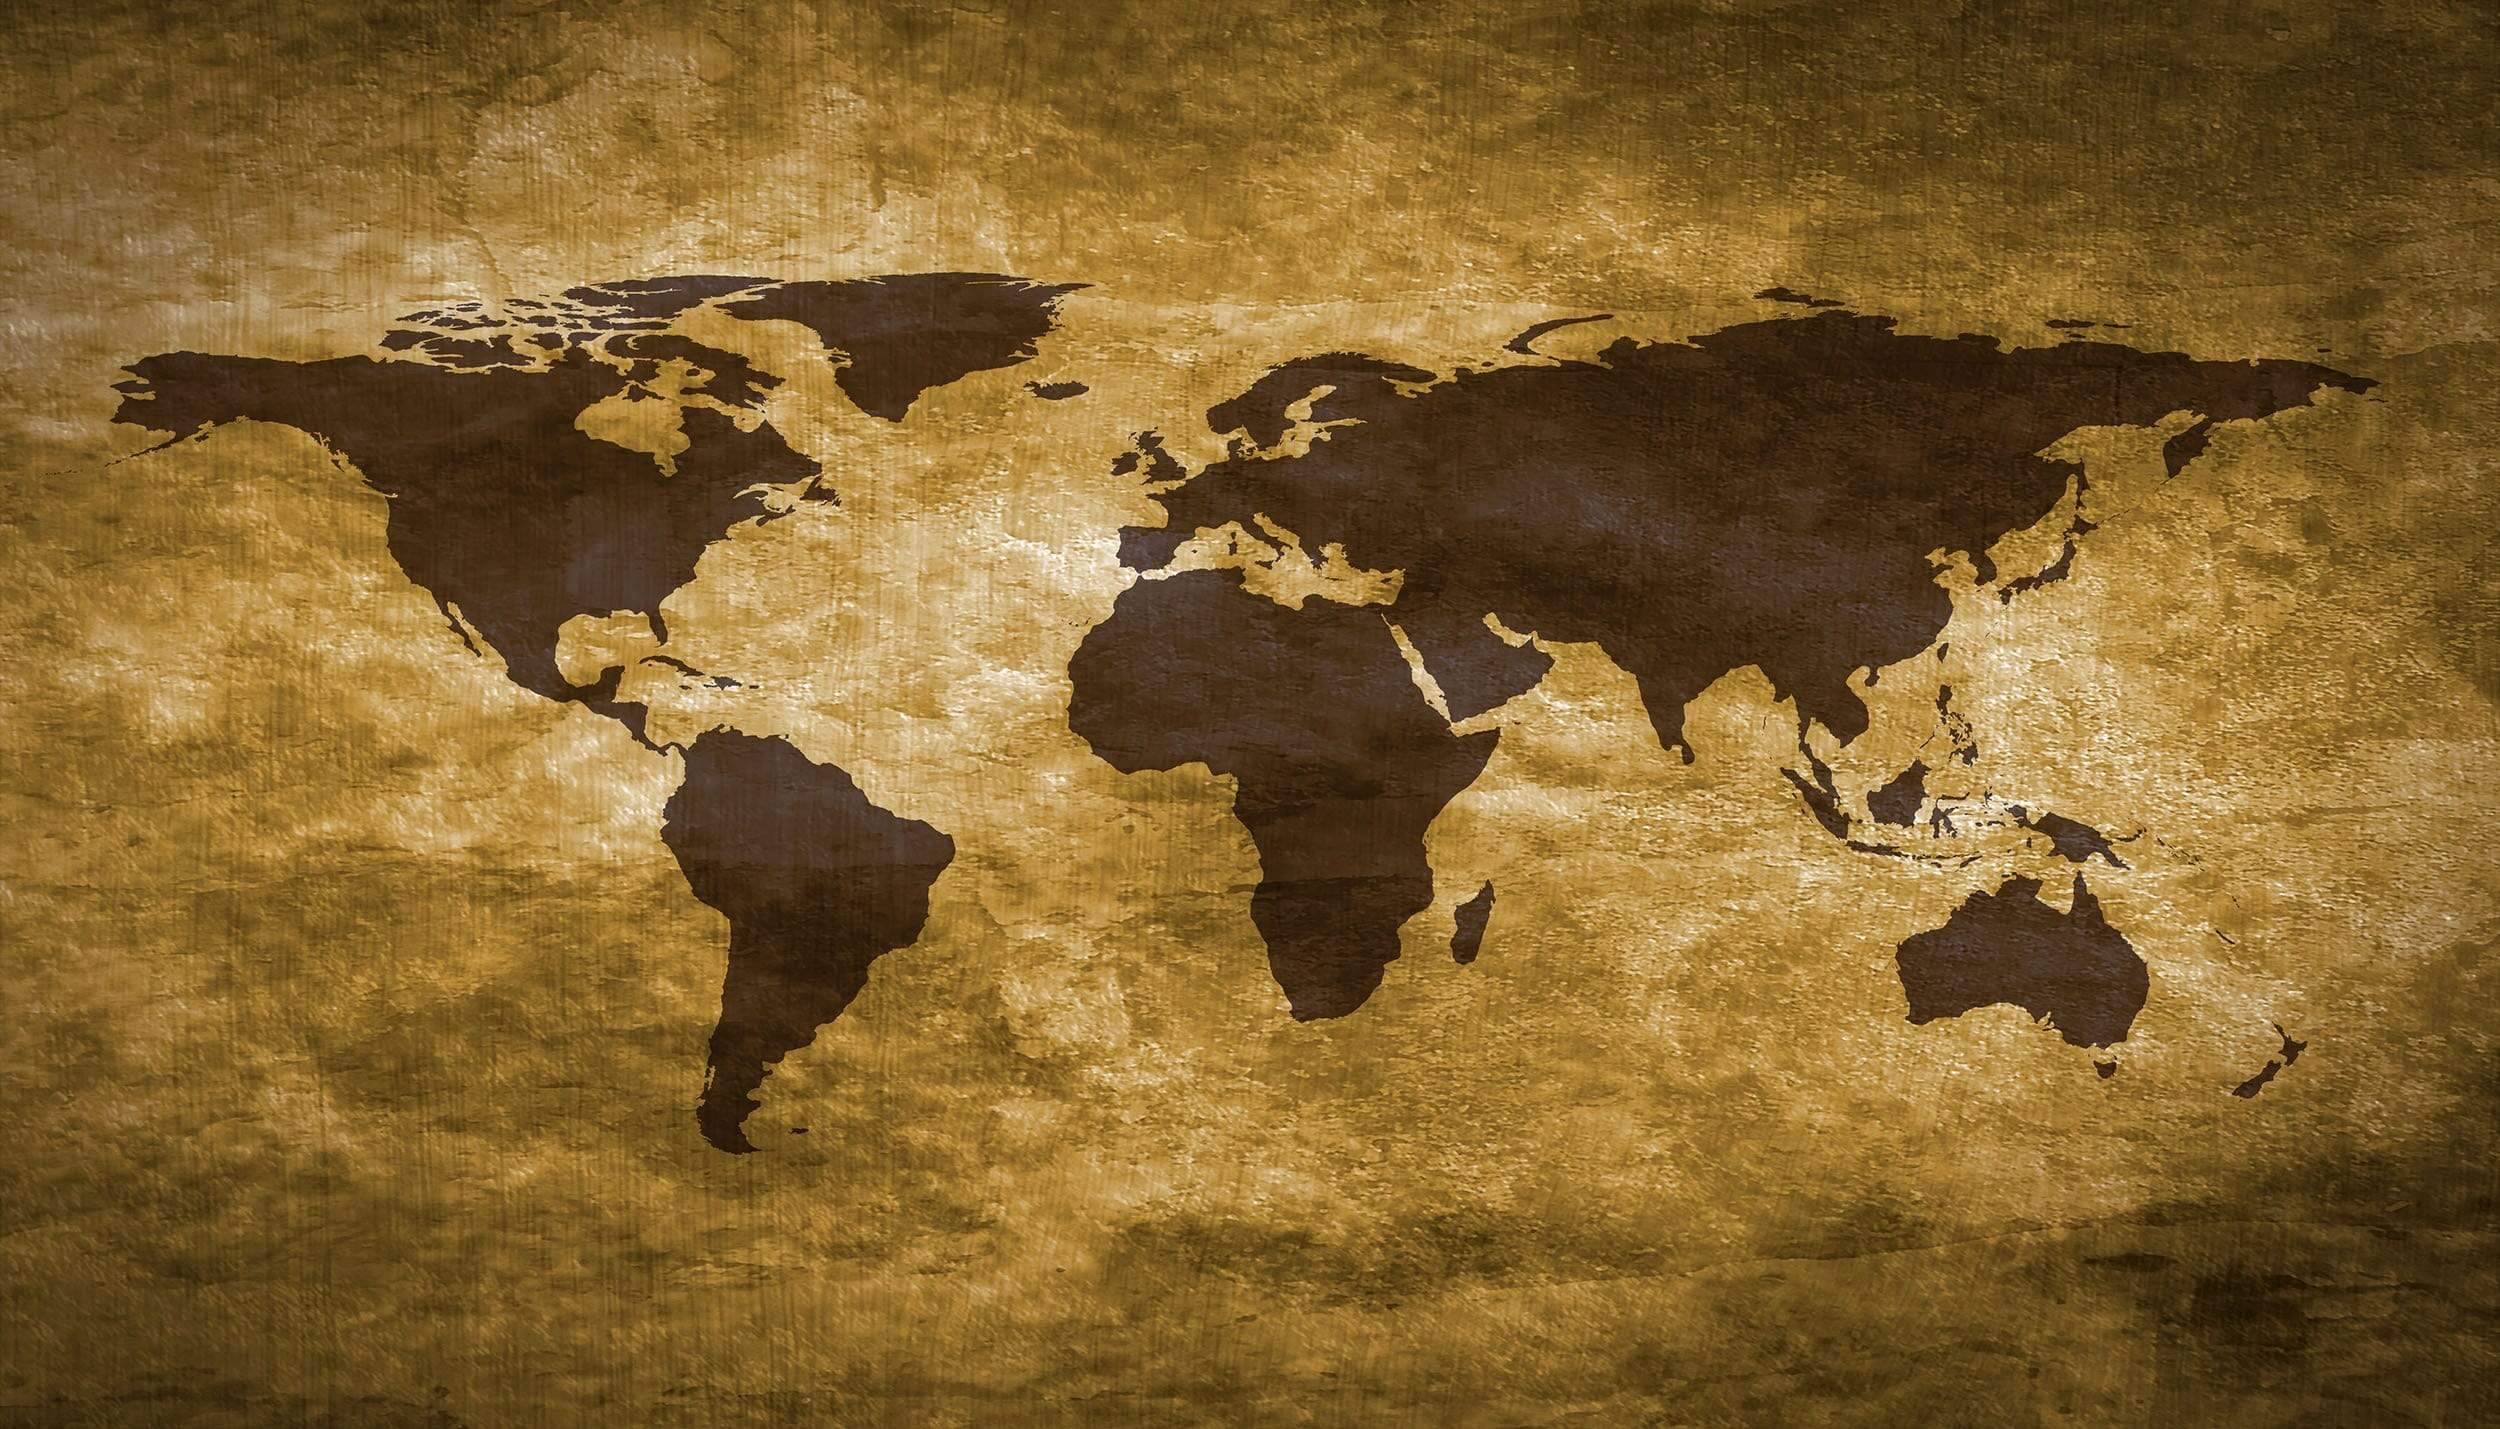 World Map Golden colour on textured paper